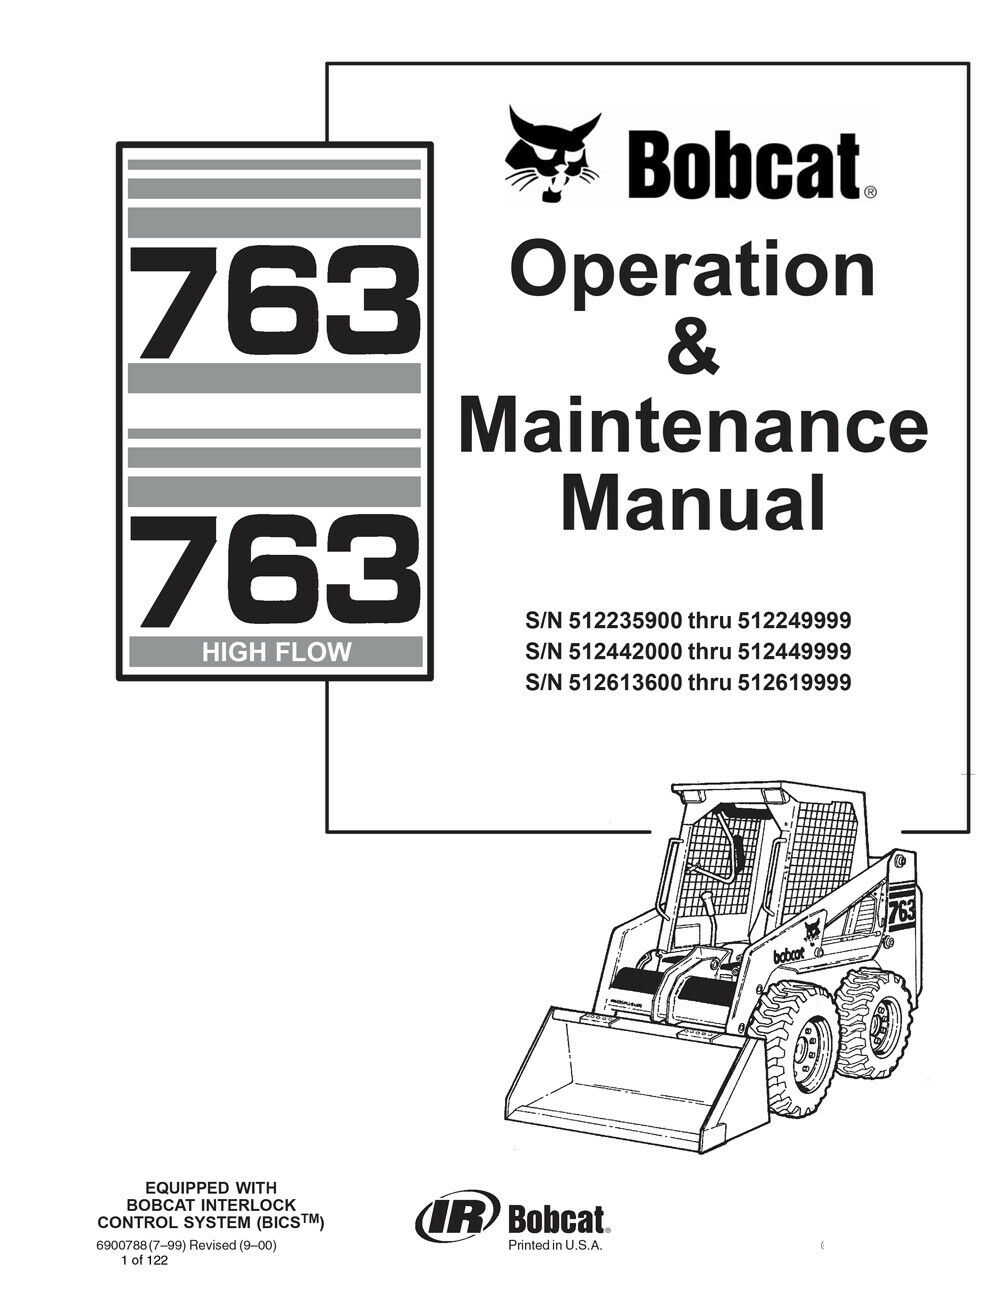 New Bobcat 763 & 763 Highflow Operation & Maintenance